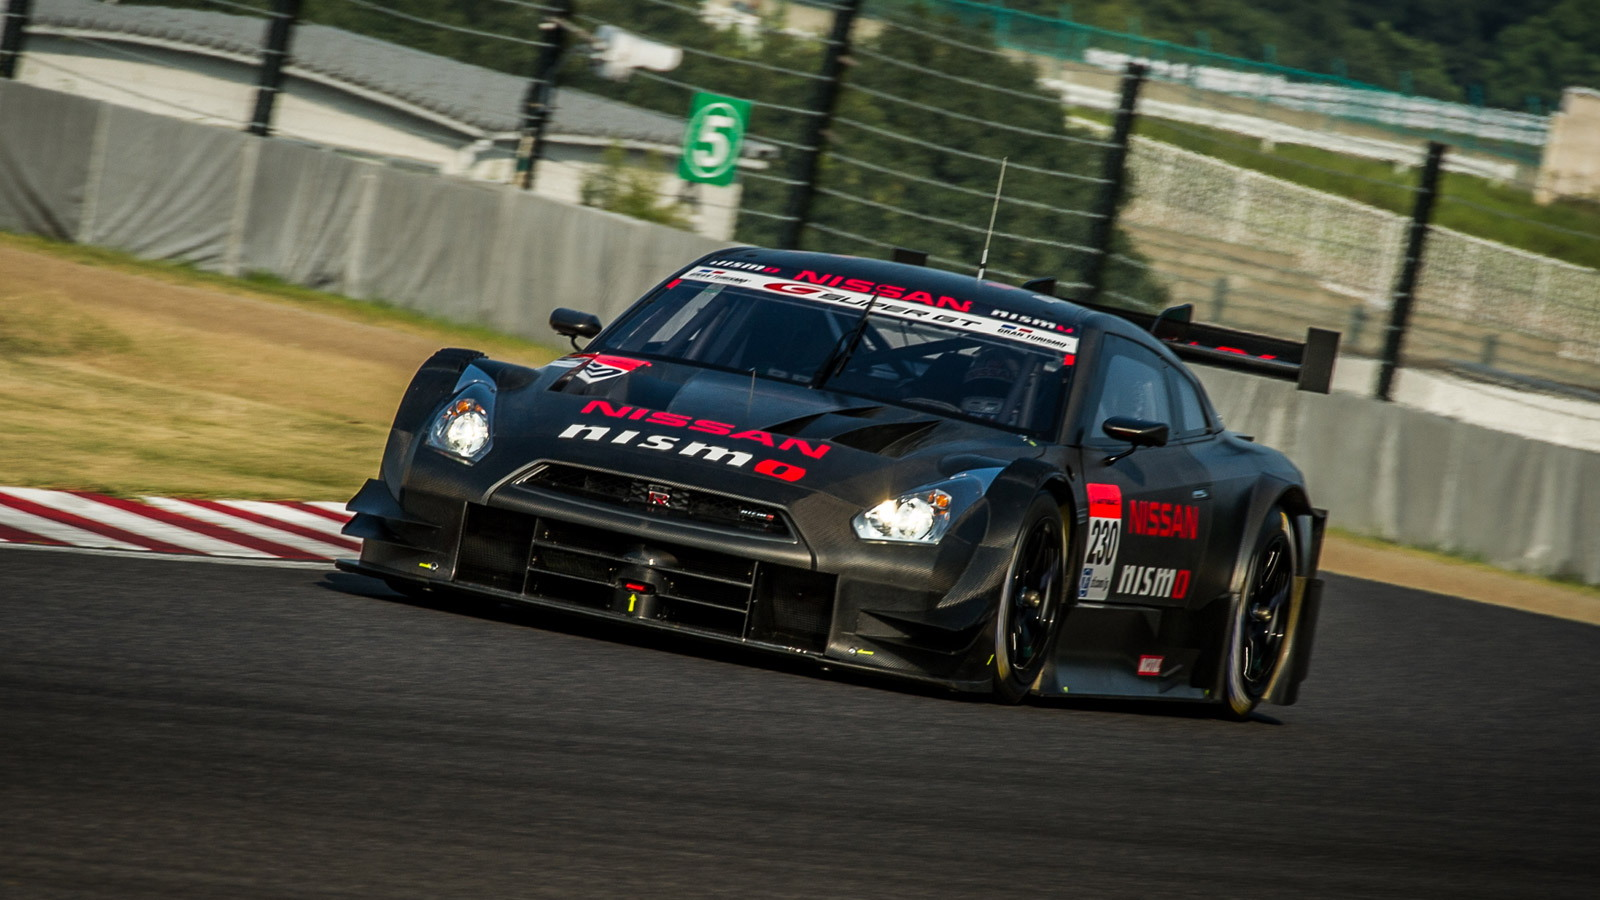 2014 Nissan GT-R NISMO GT500 Super GT race car